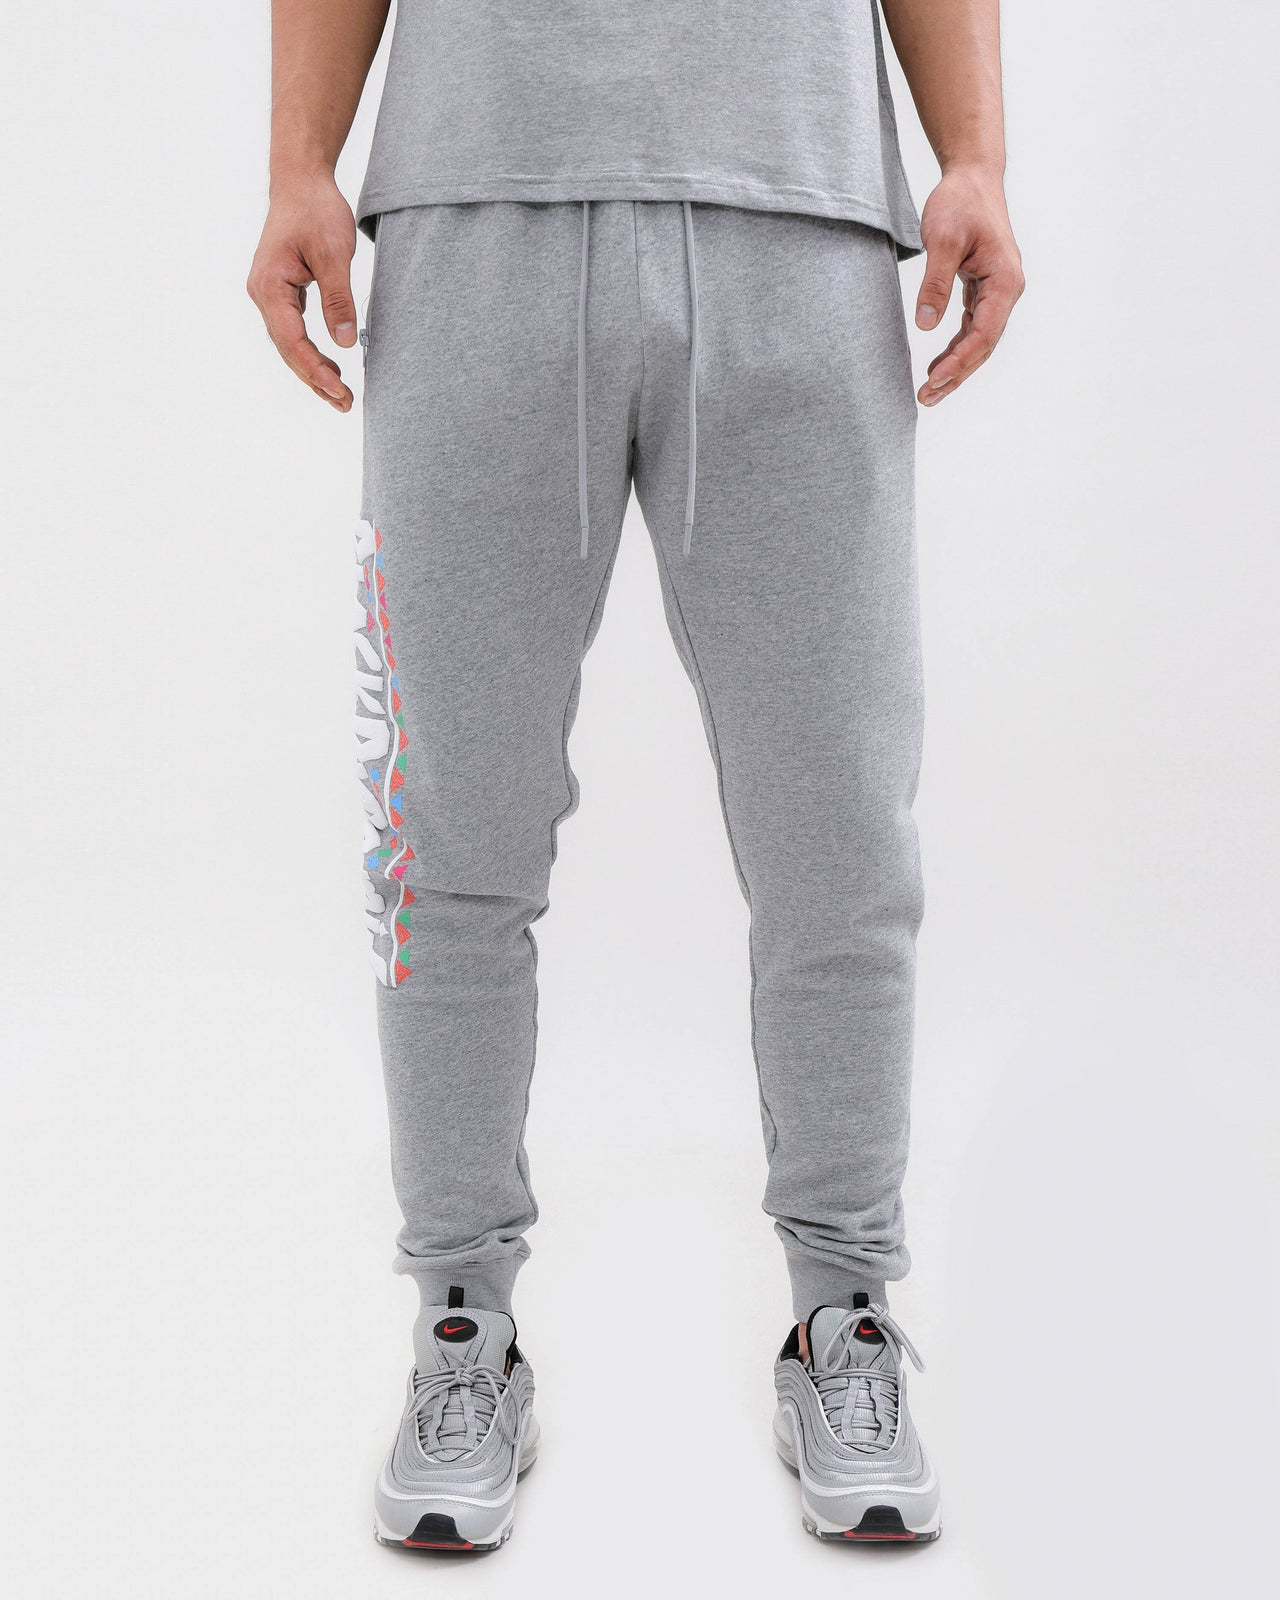 CHOICES PANTS-COLOR: HEATHER GRAY